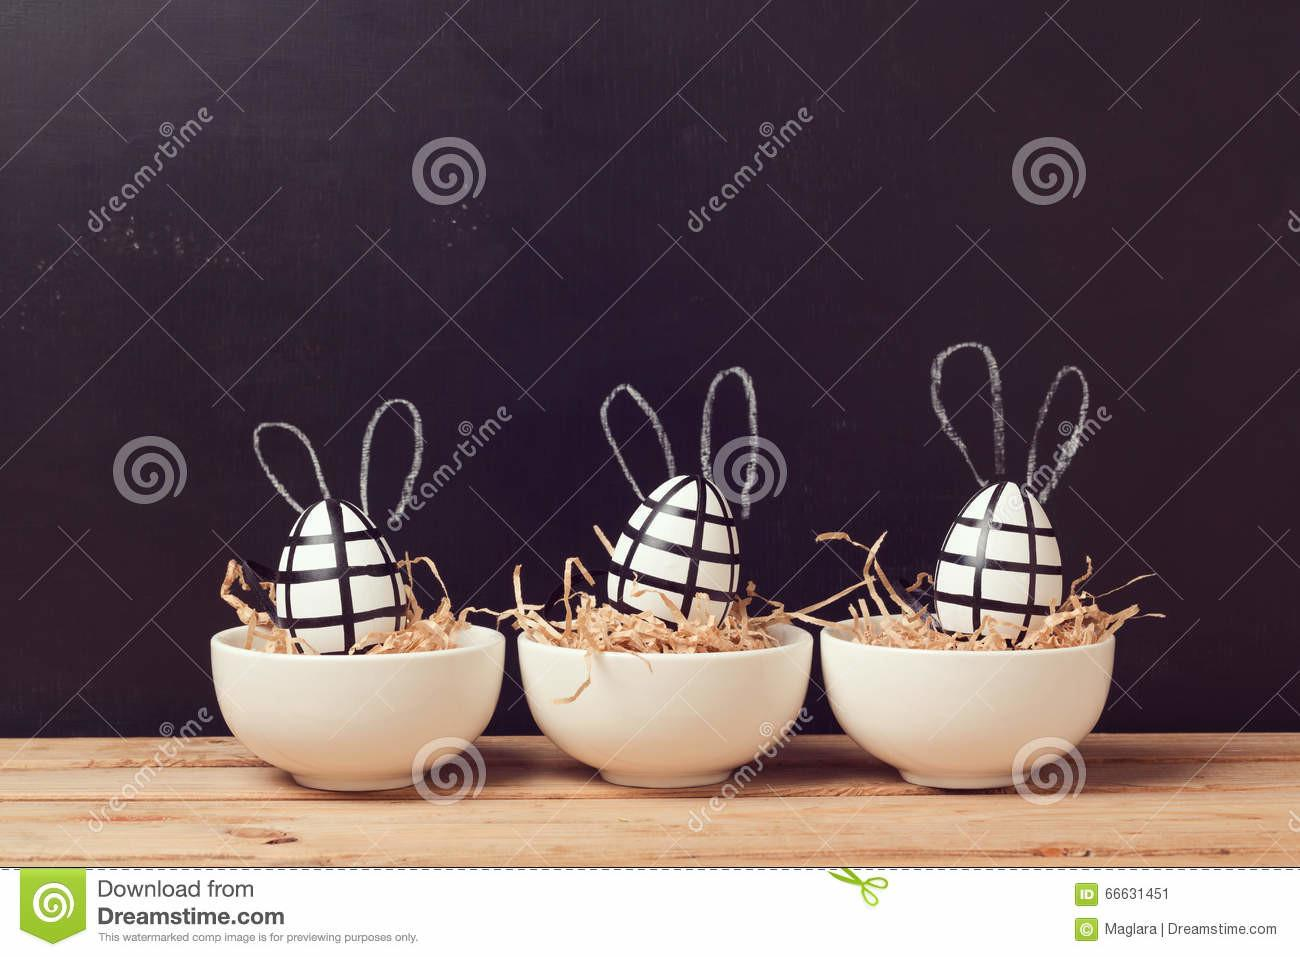 Modern Easter Egg Decorations Bunny Ears